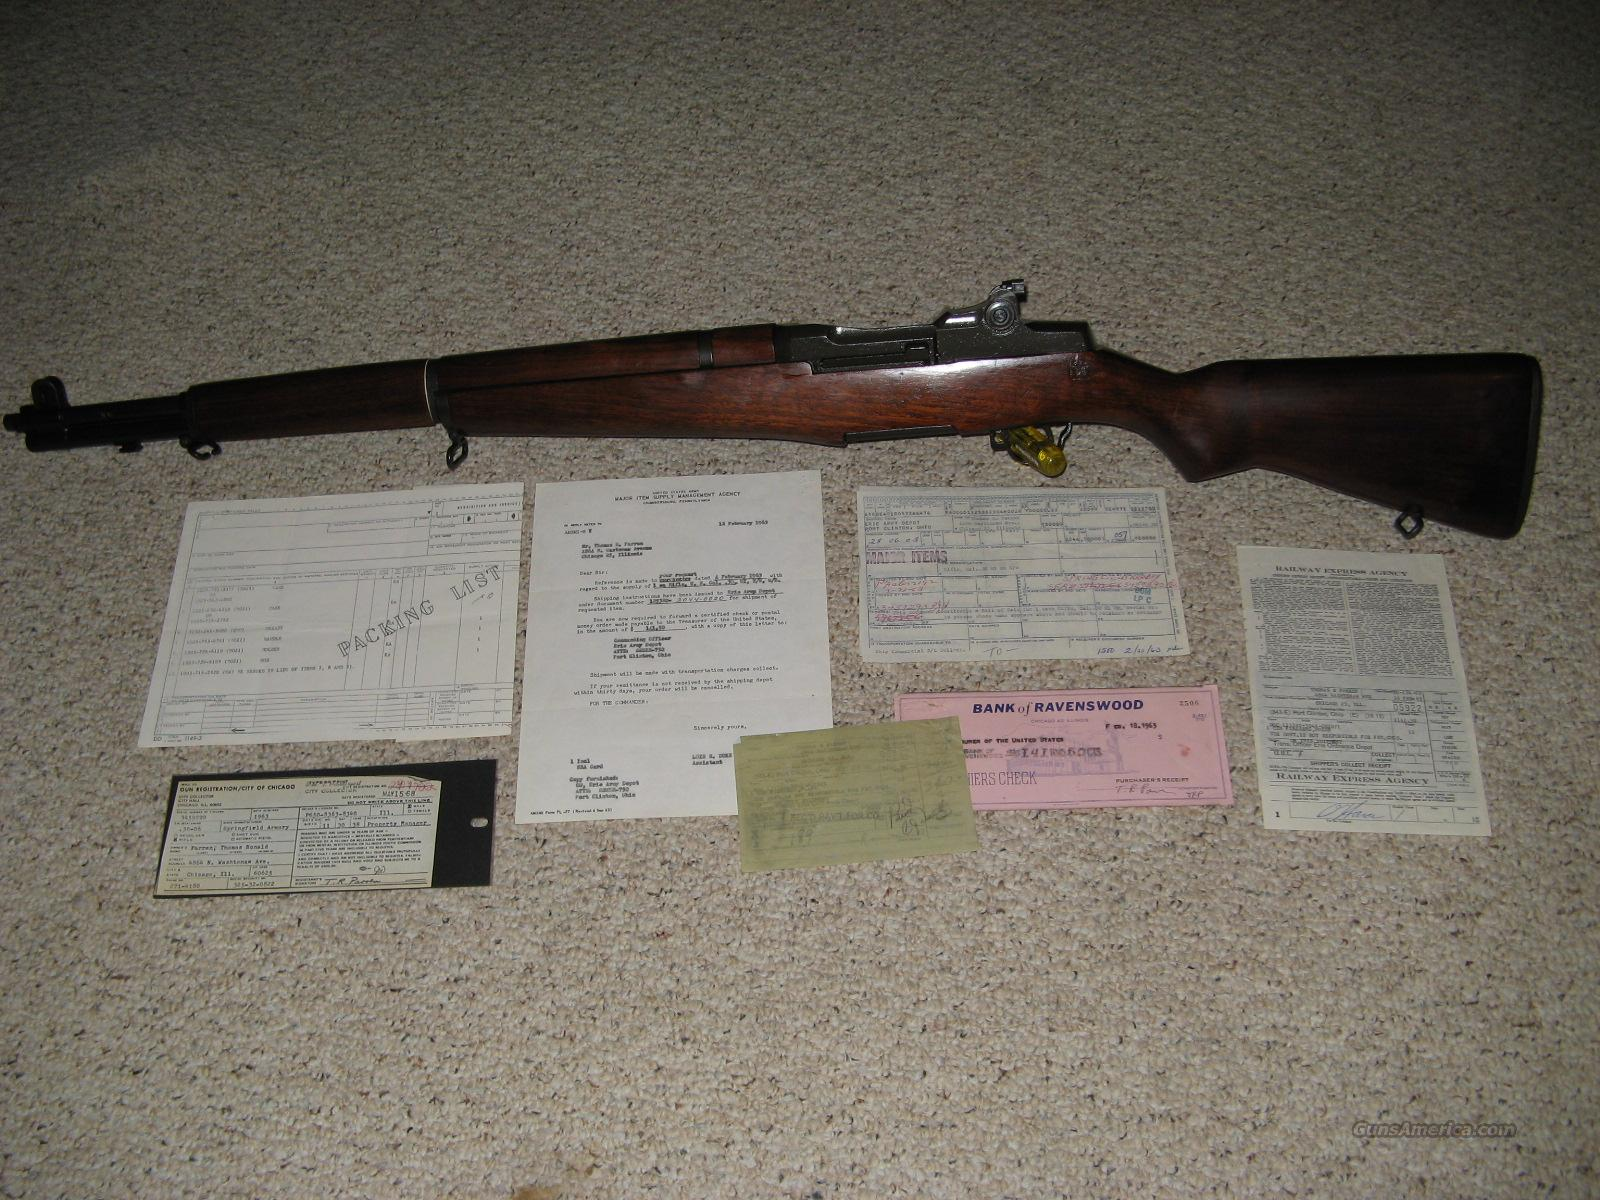 NM M1 Garand-Type 2  Guns > Rifles > Springfield Armory Rifles > M1 Garand